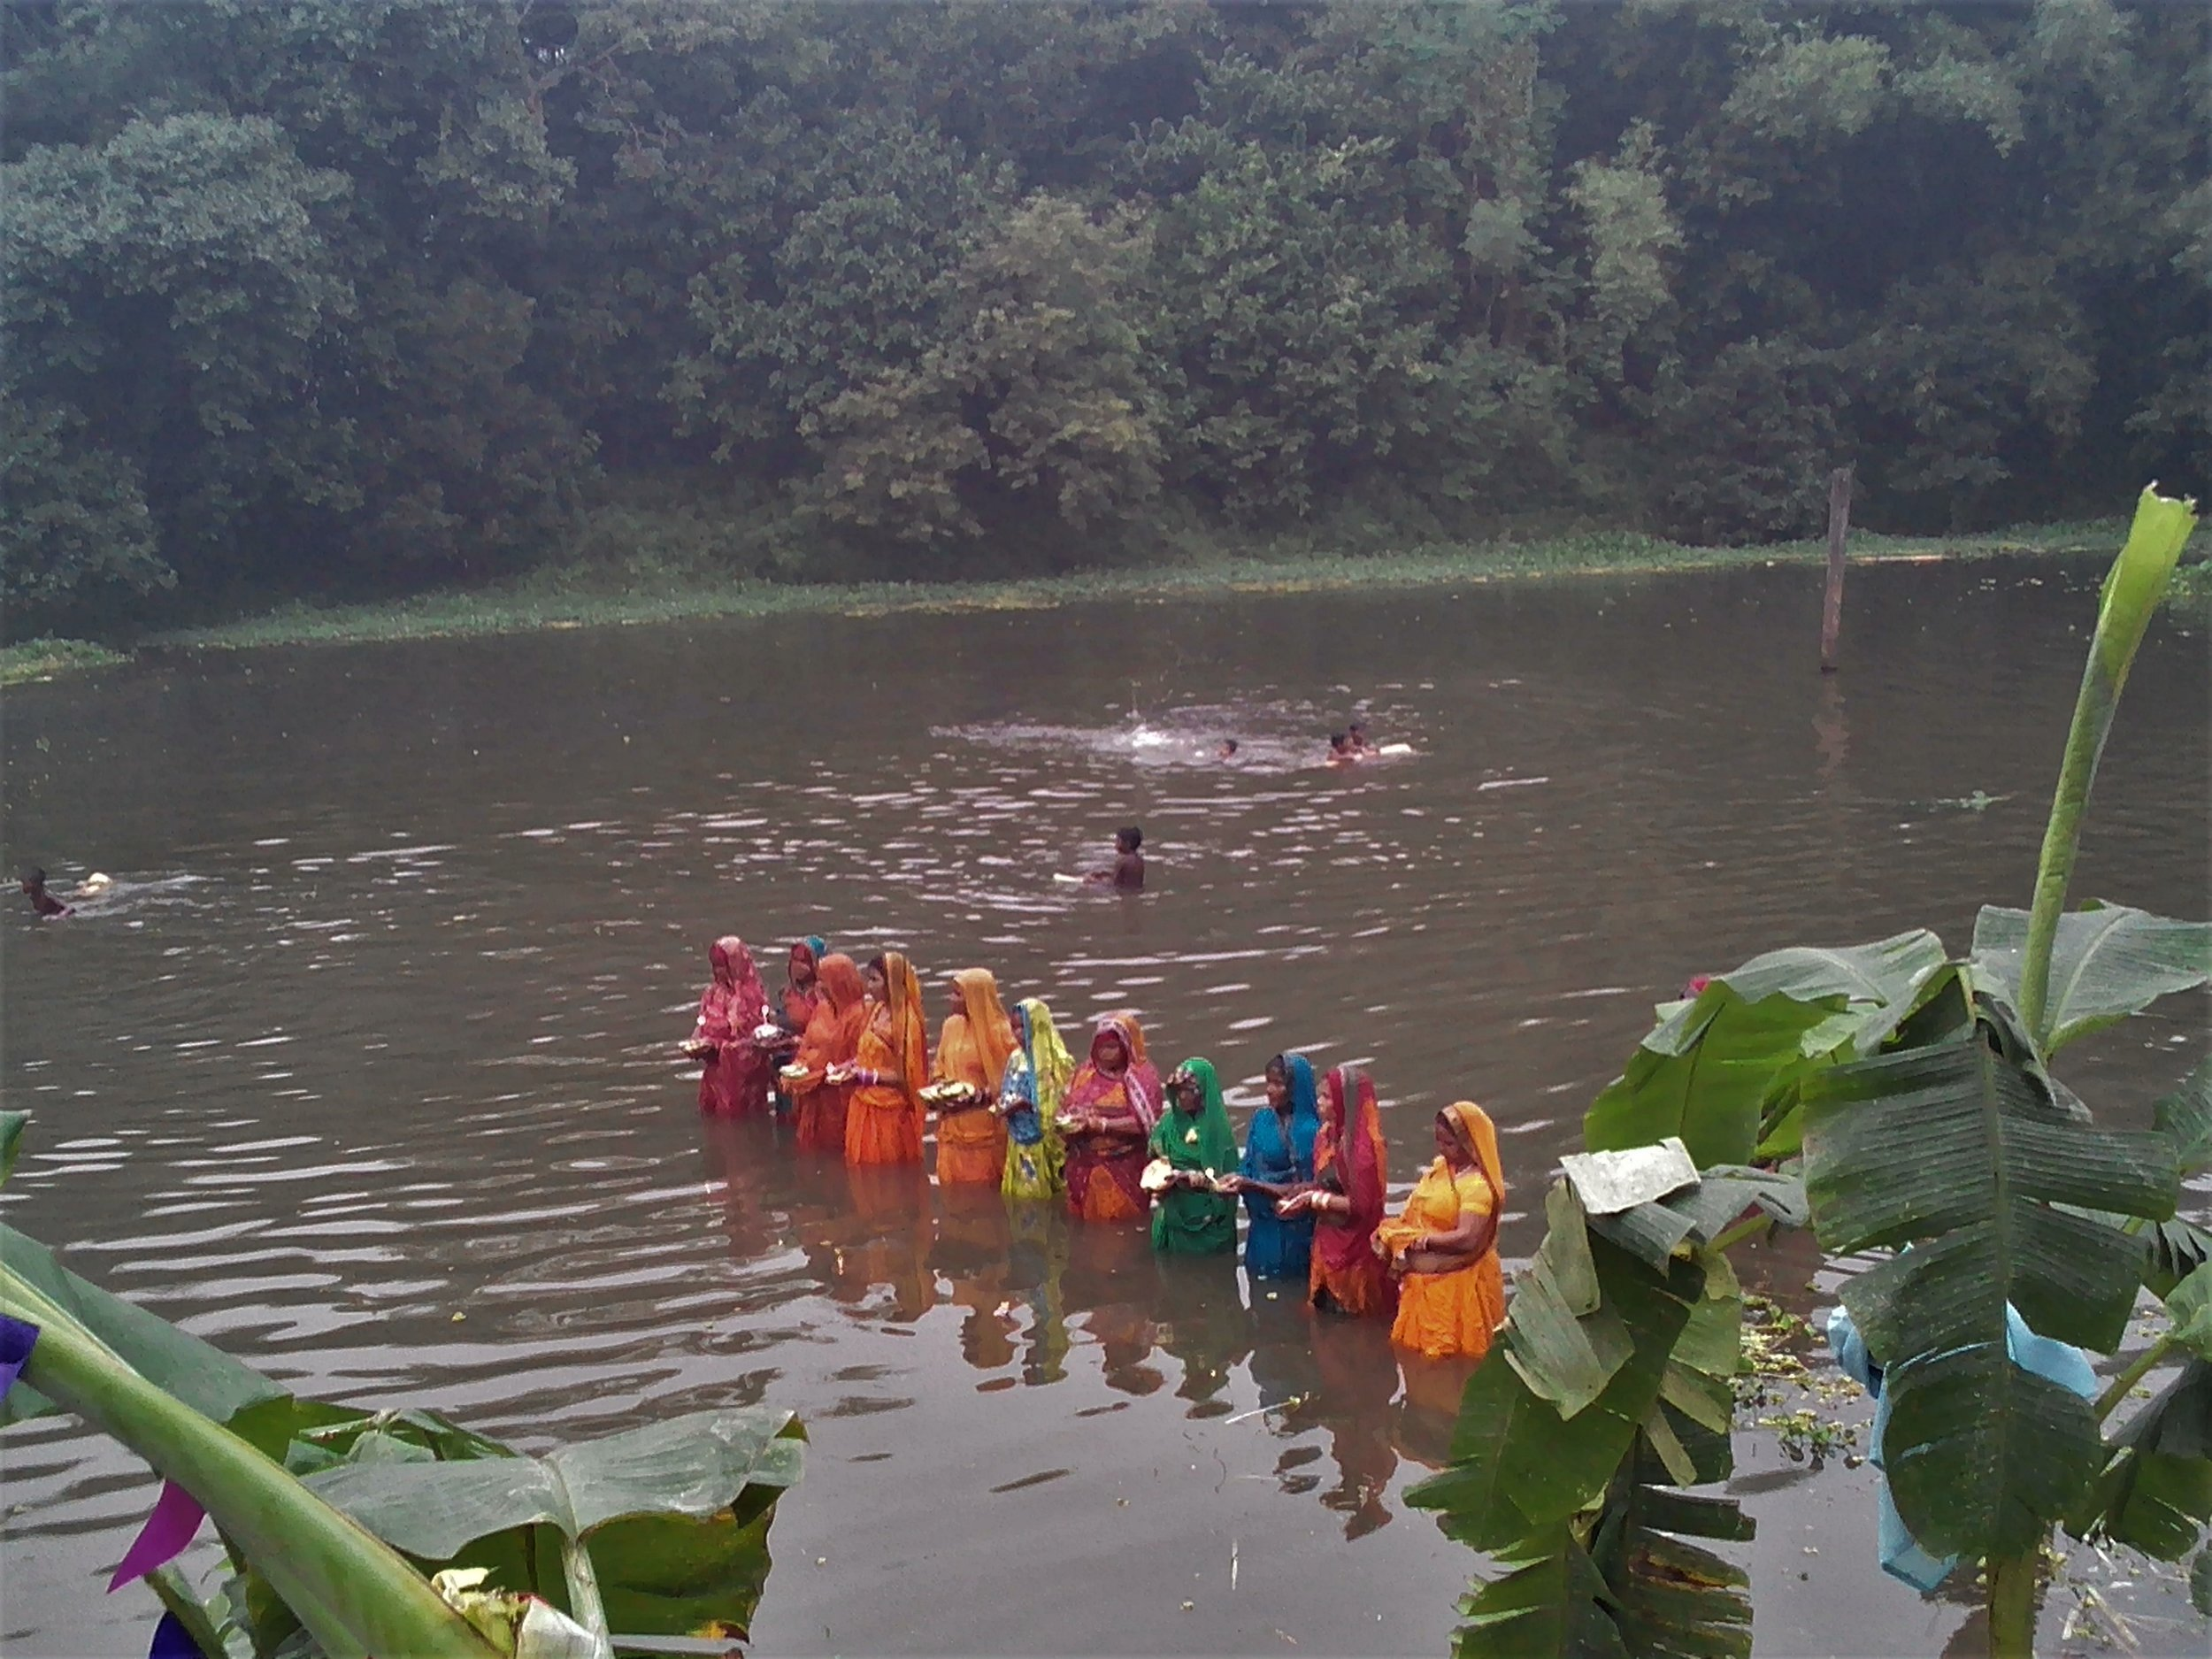 Women of a village in Araria observes Chhath prayer in the evening. Credit: Zaheeb Ajmal